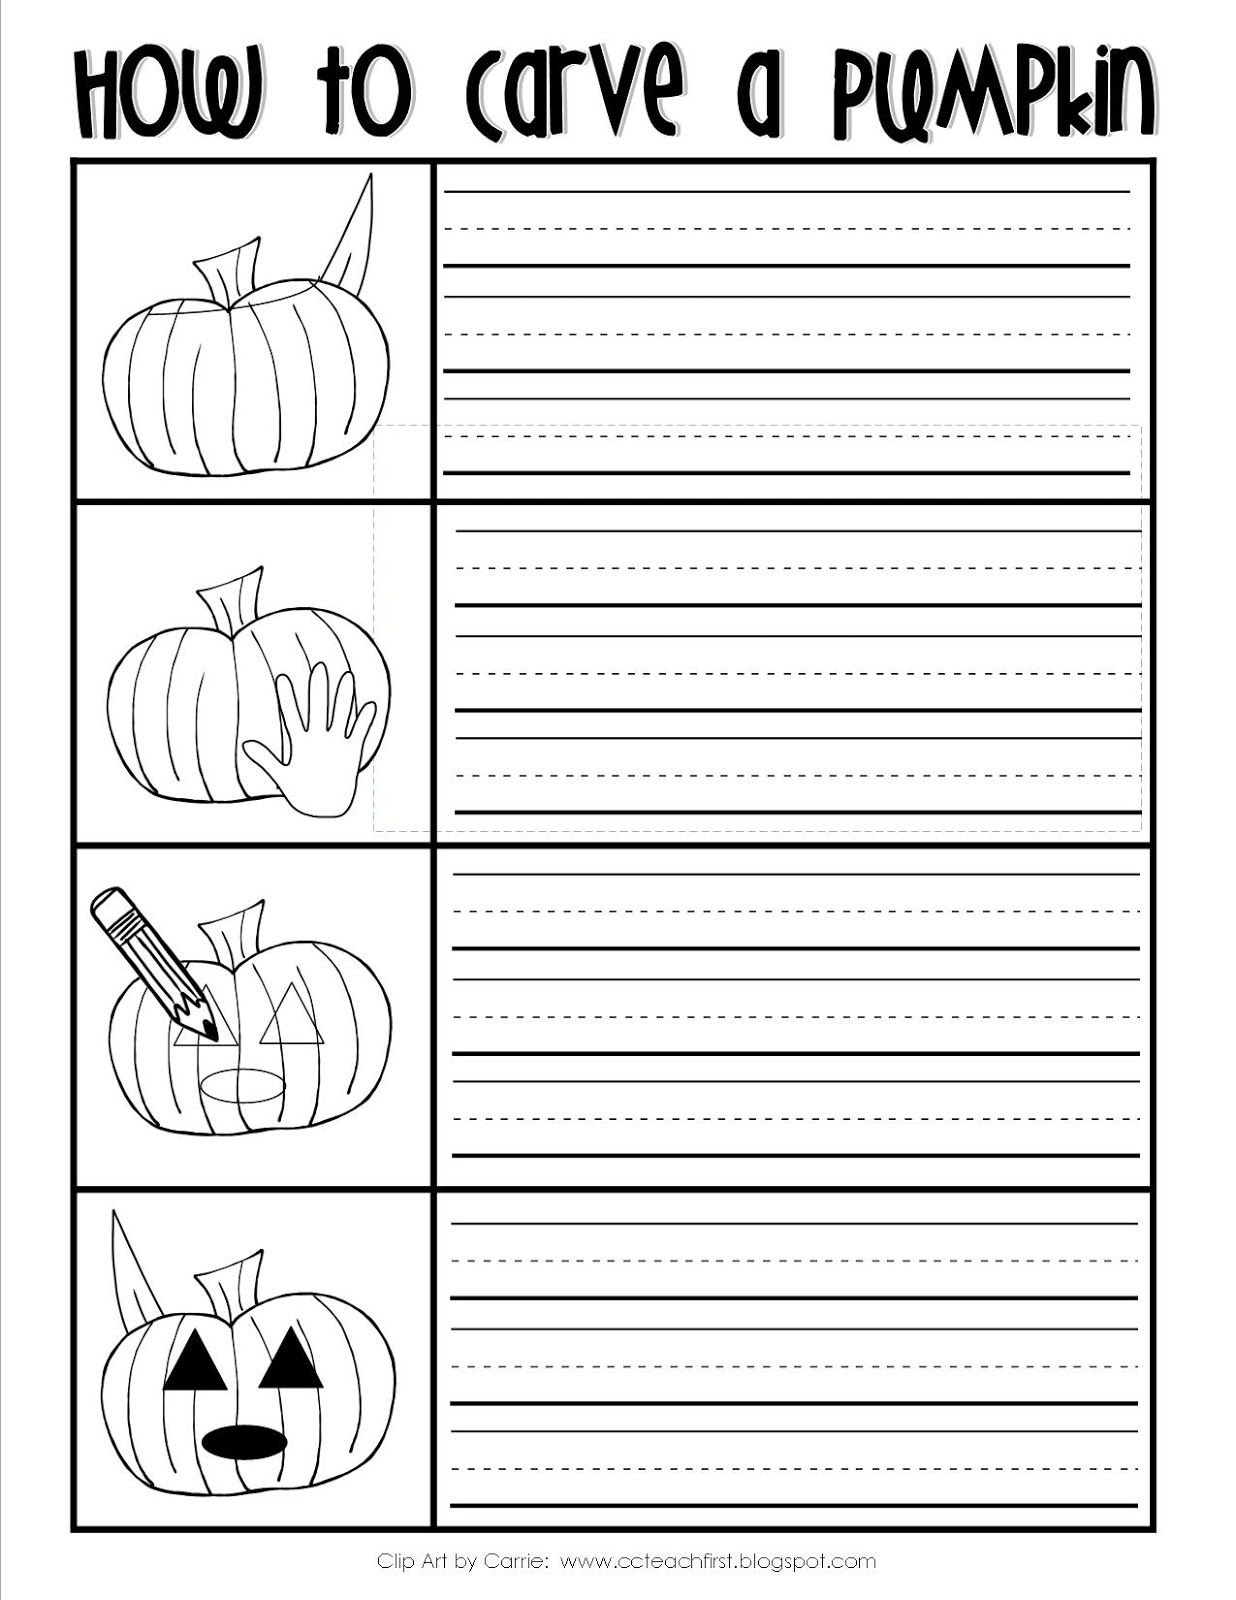 Clip Art By Carrie Teaching First Freebie How To Carve A